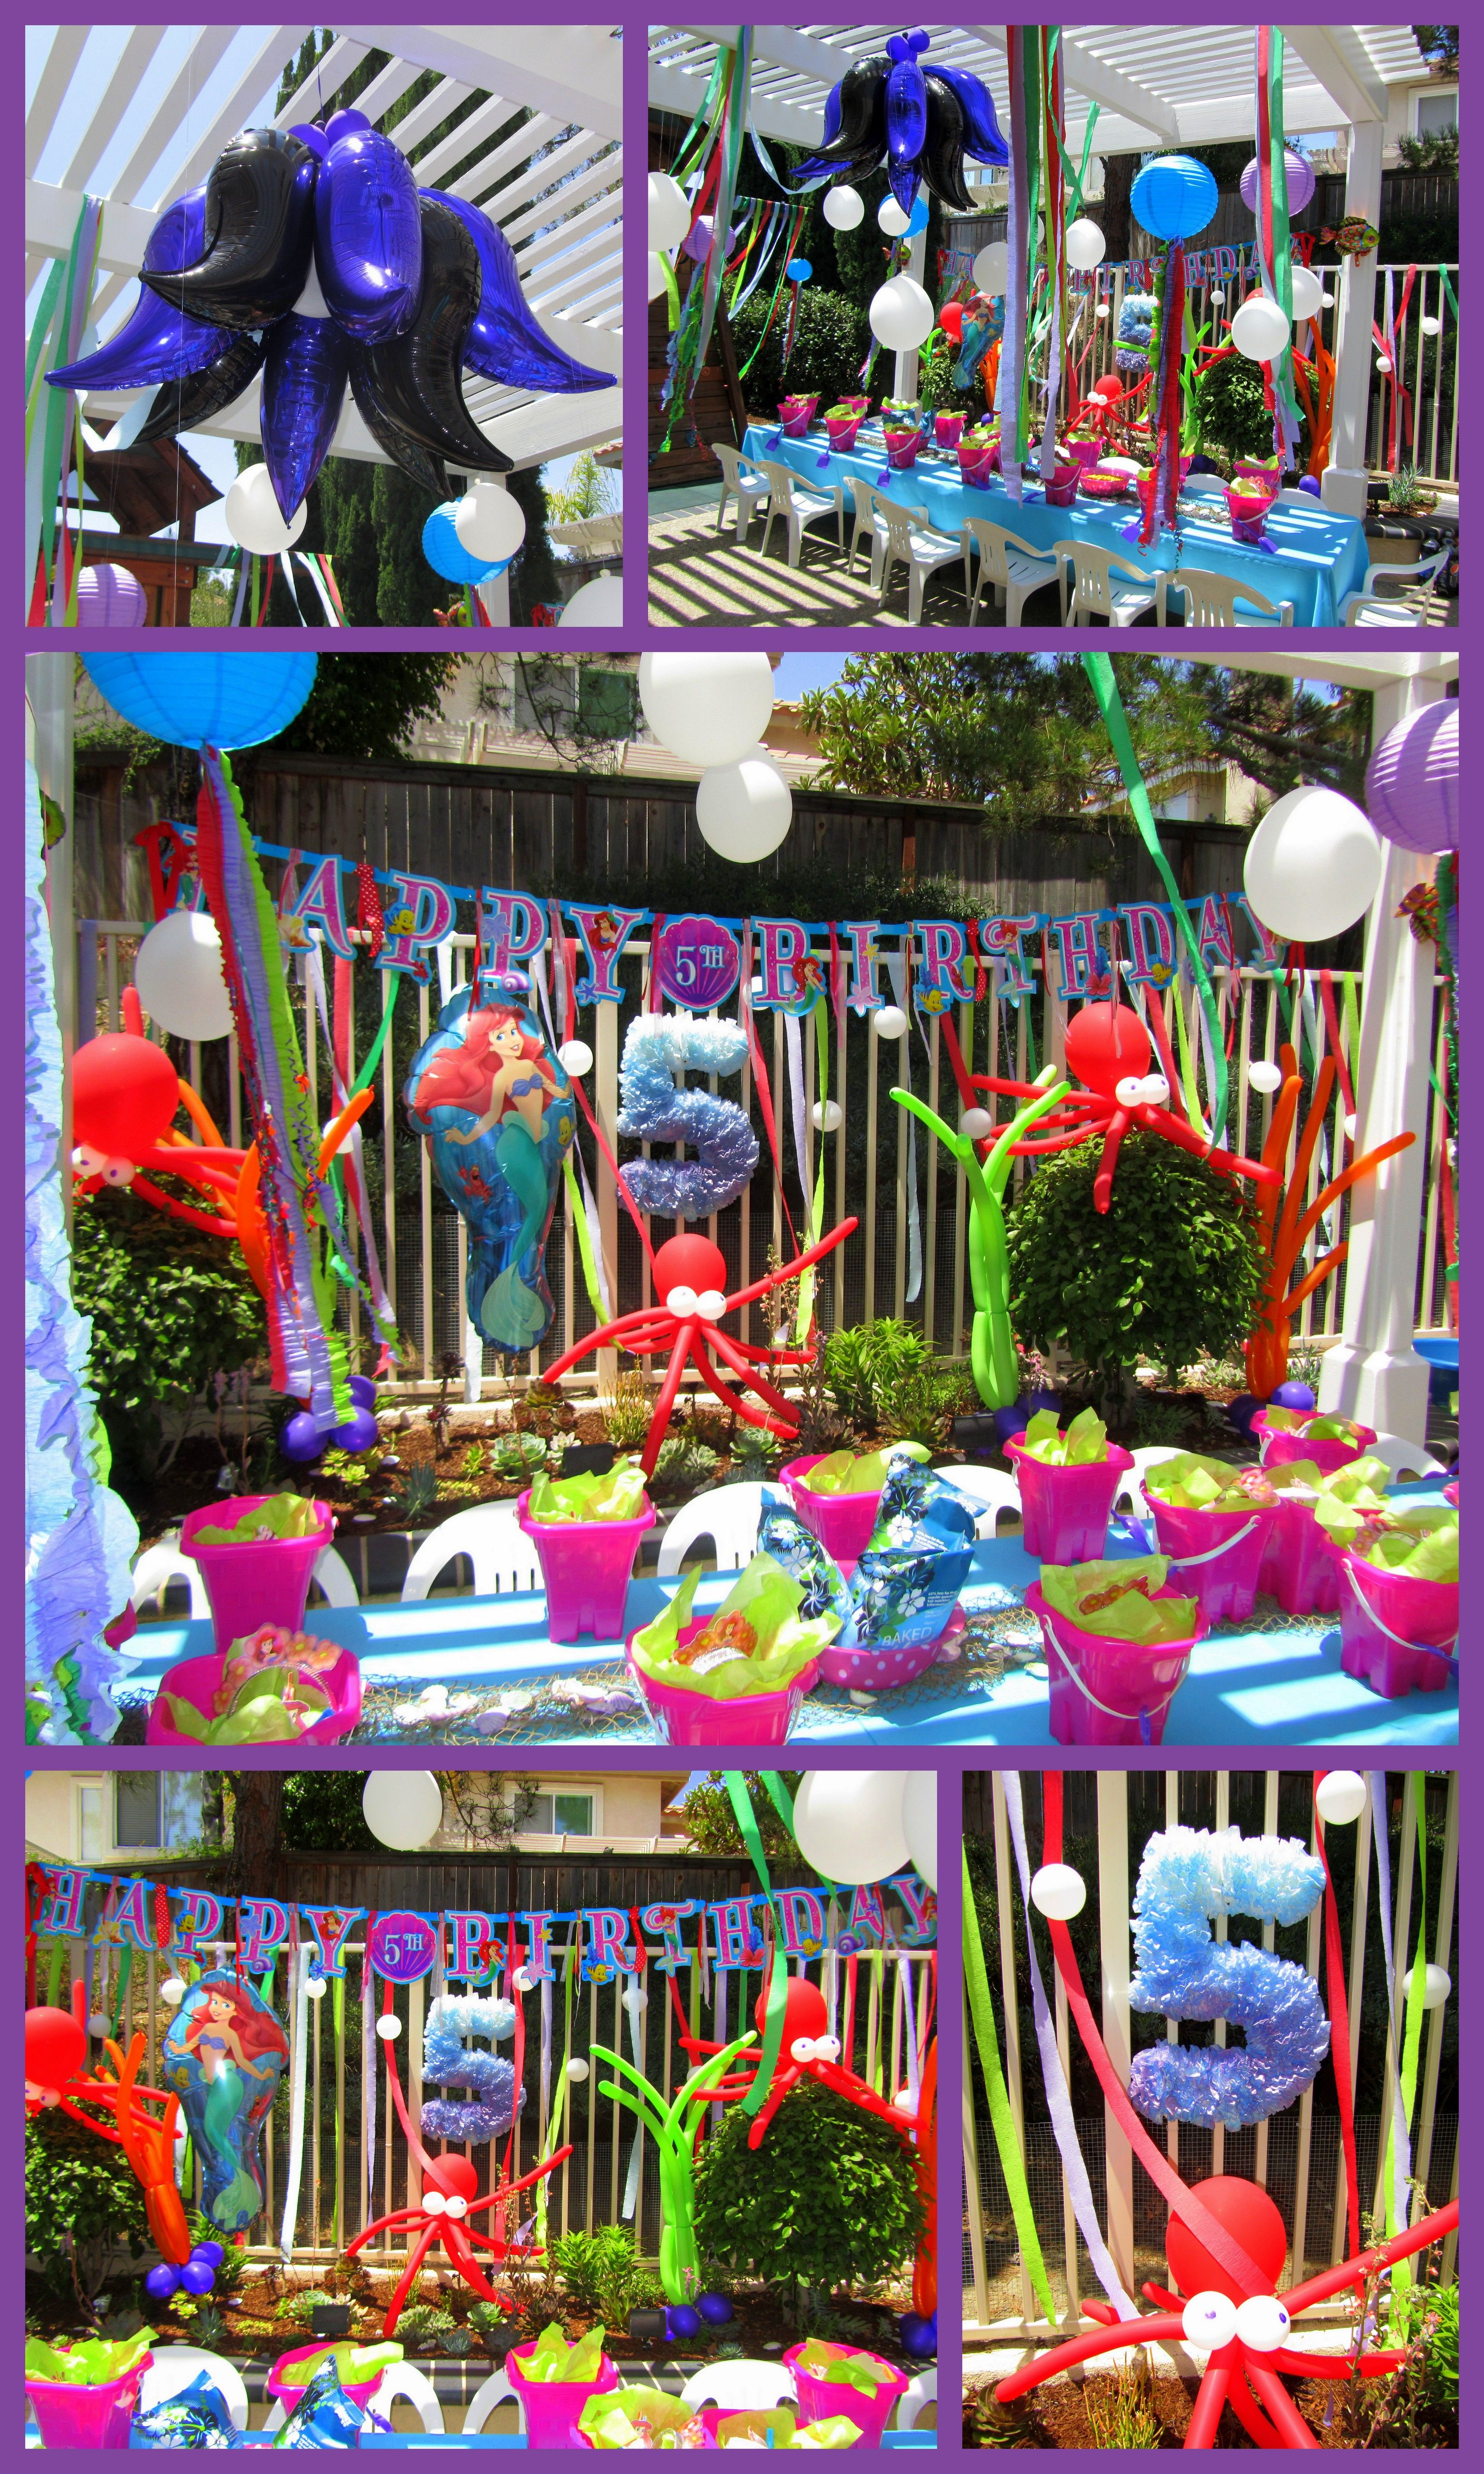 Little mermaid party decorations b birthday pinterest for Ariel party decoration ideas